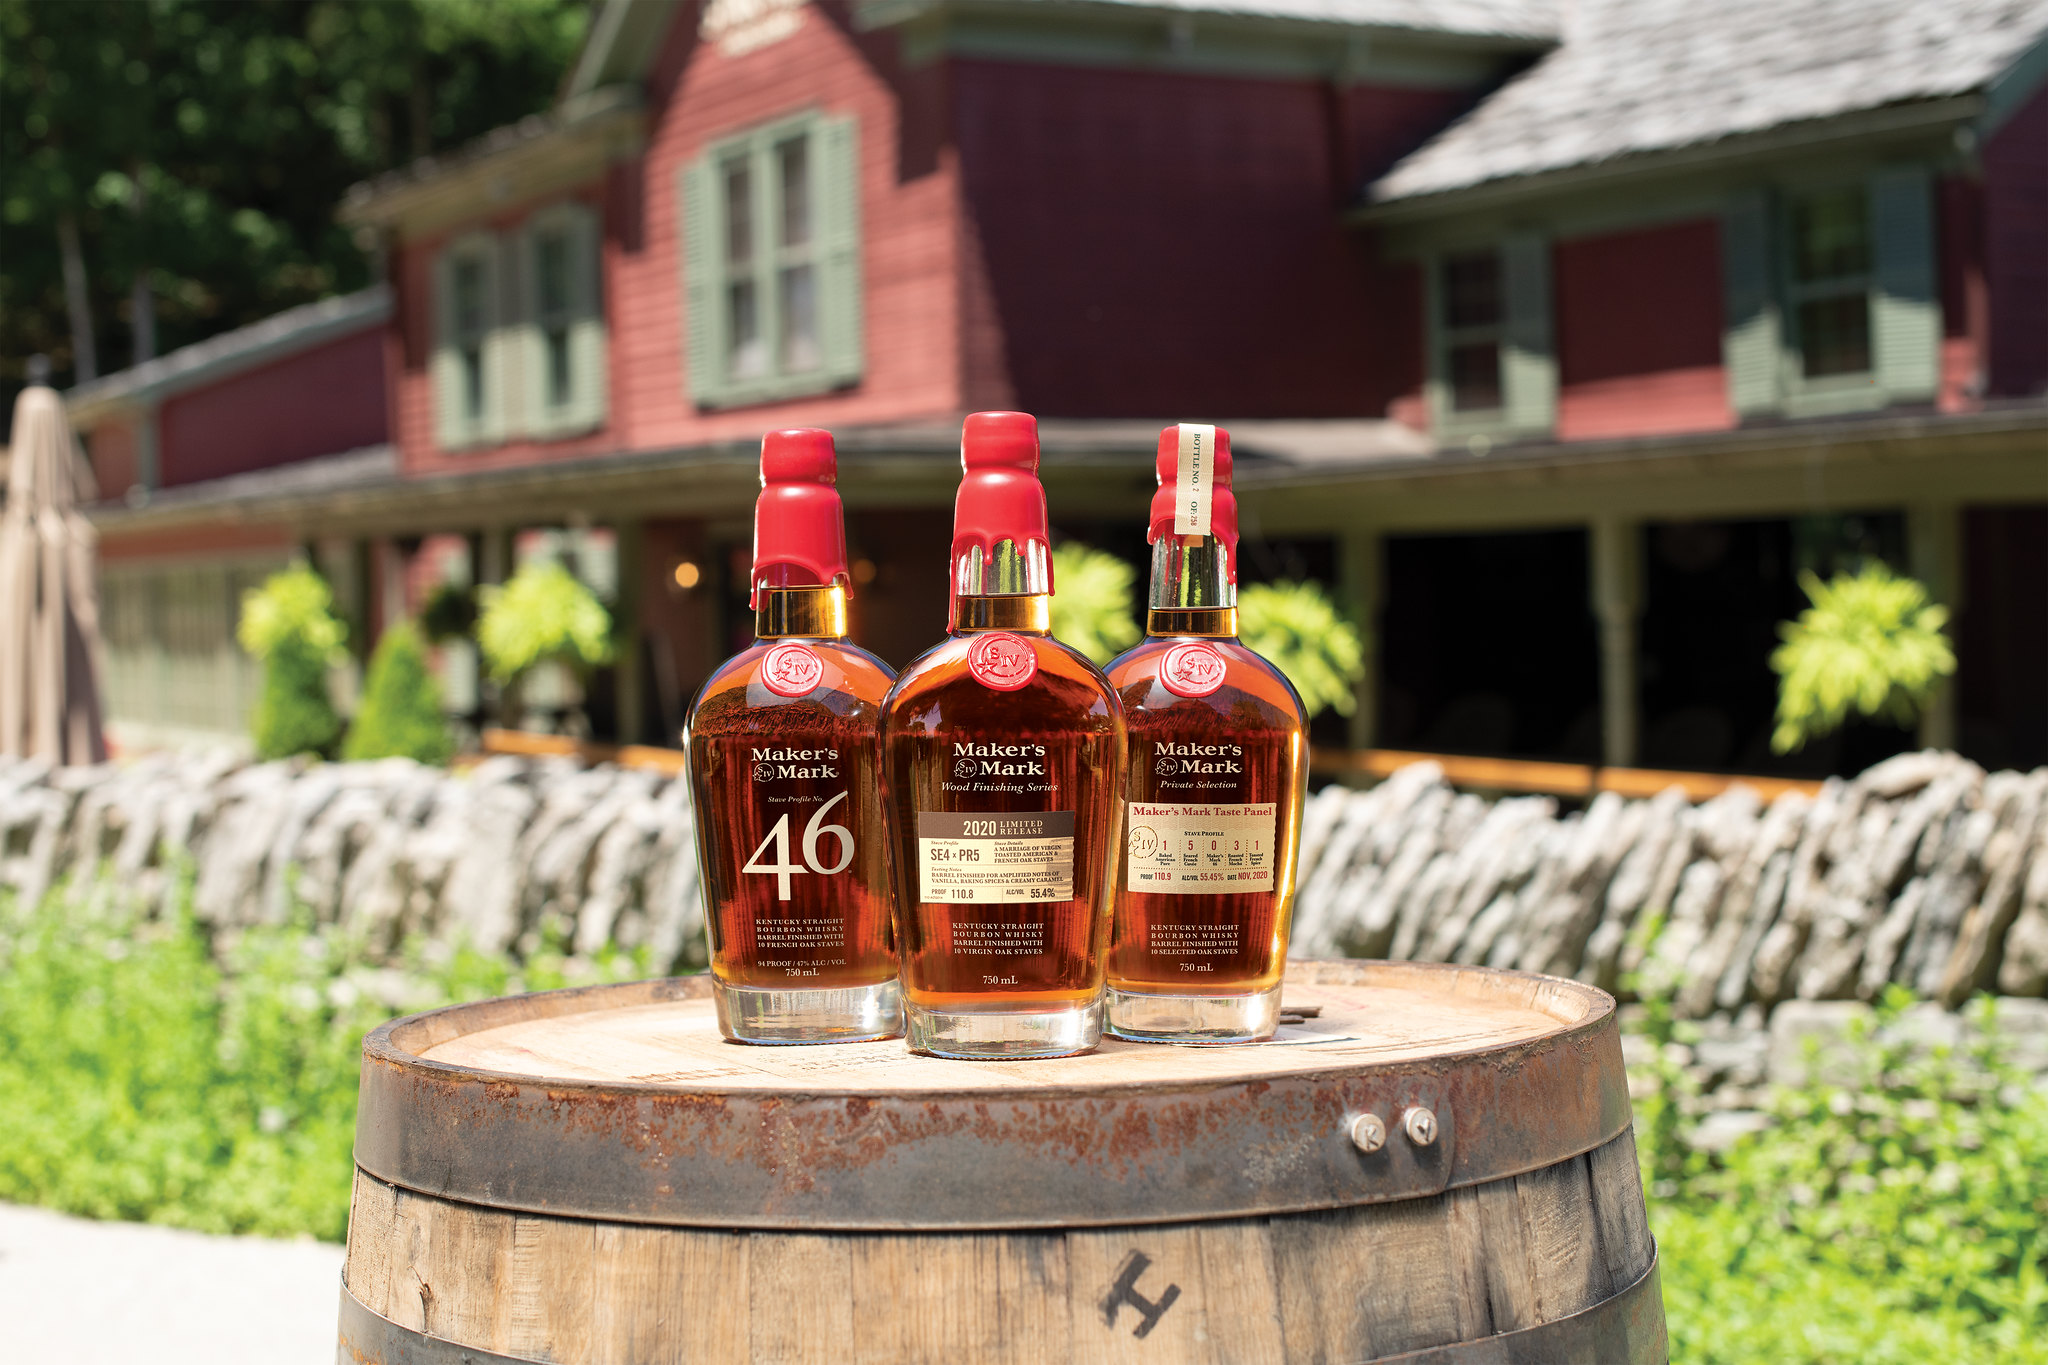 50196270952 e527100585 k - MAKER'S MARK® UNVEILS 2020 LIMITED EDITION BOTTLING OF WOOD FINISHING SERIES